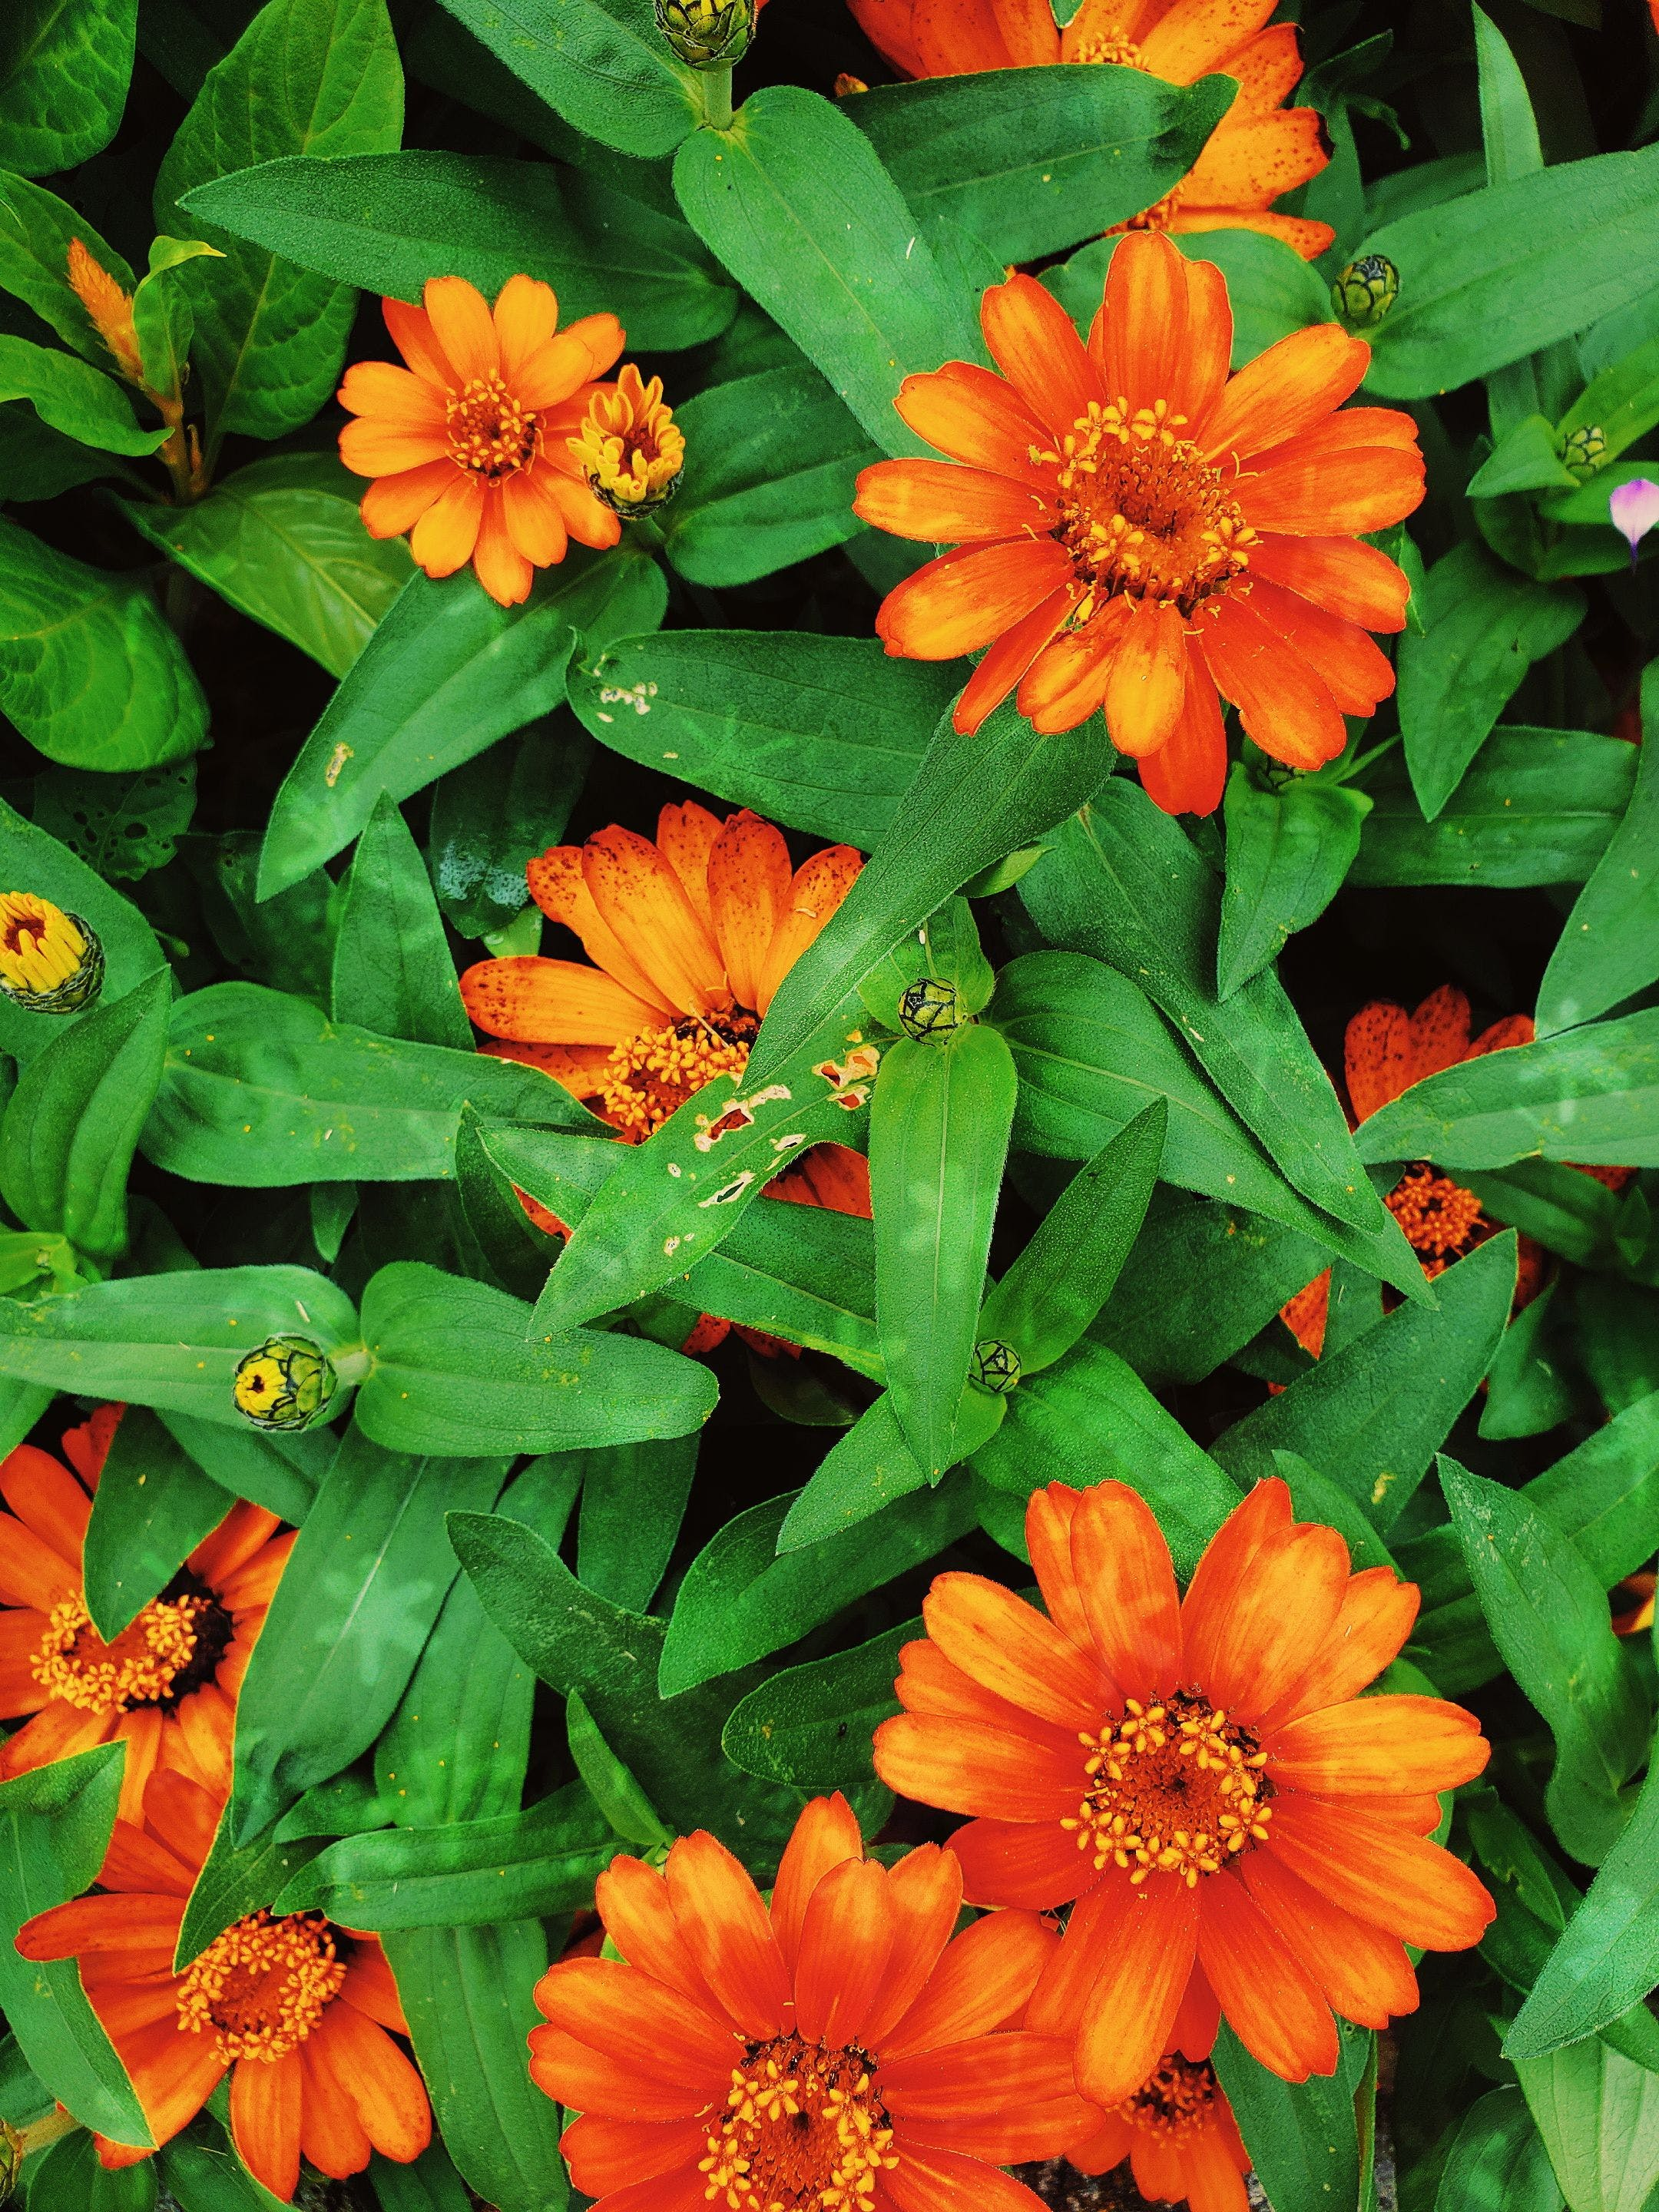 Closeup View of Orange Flowers